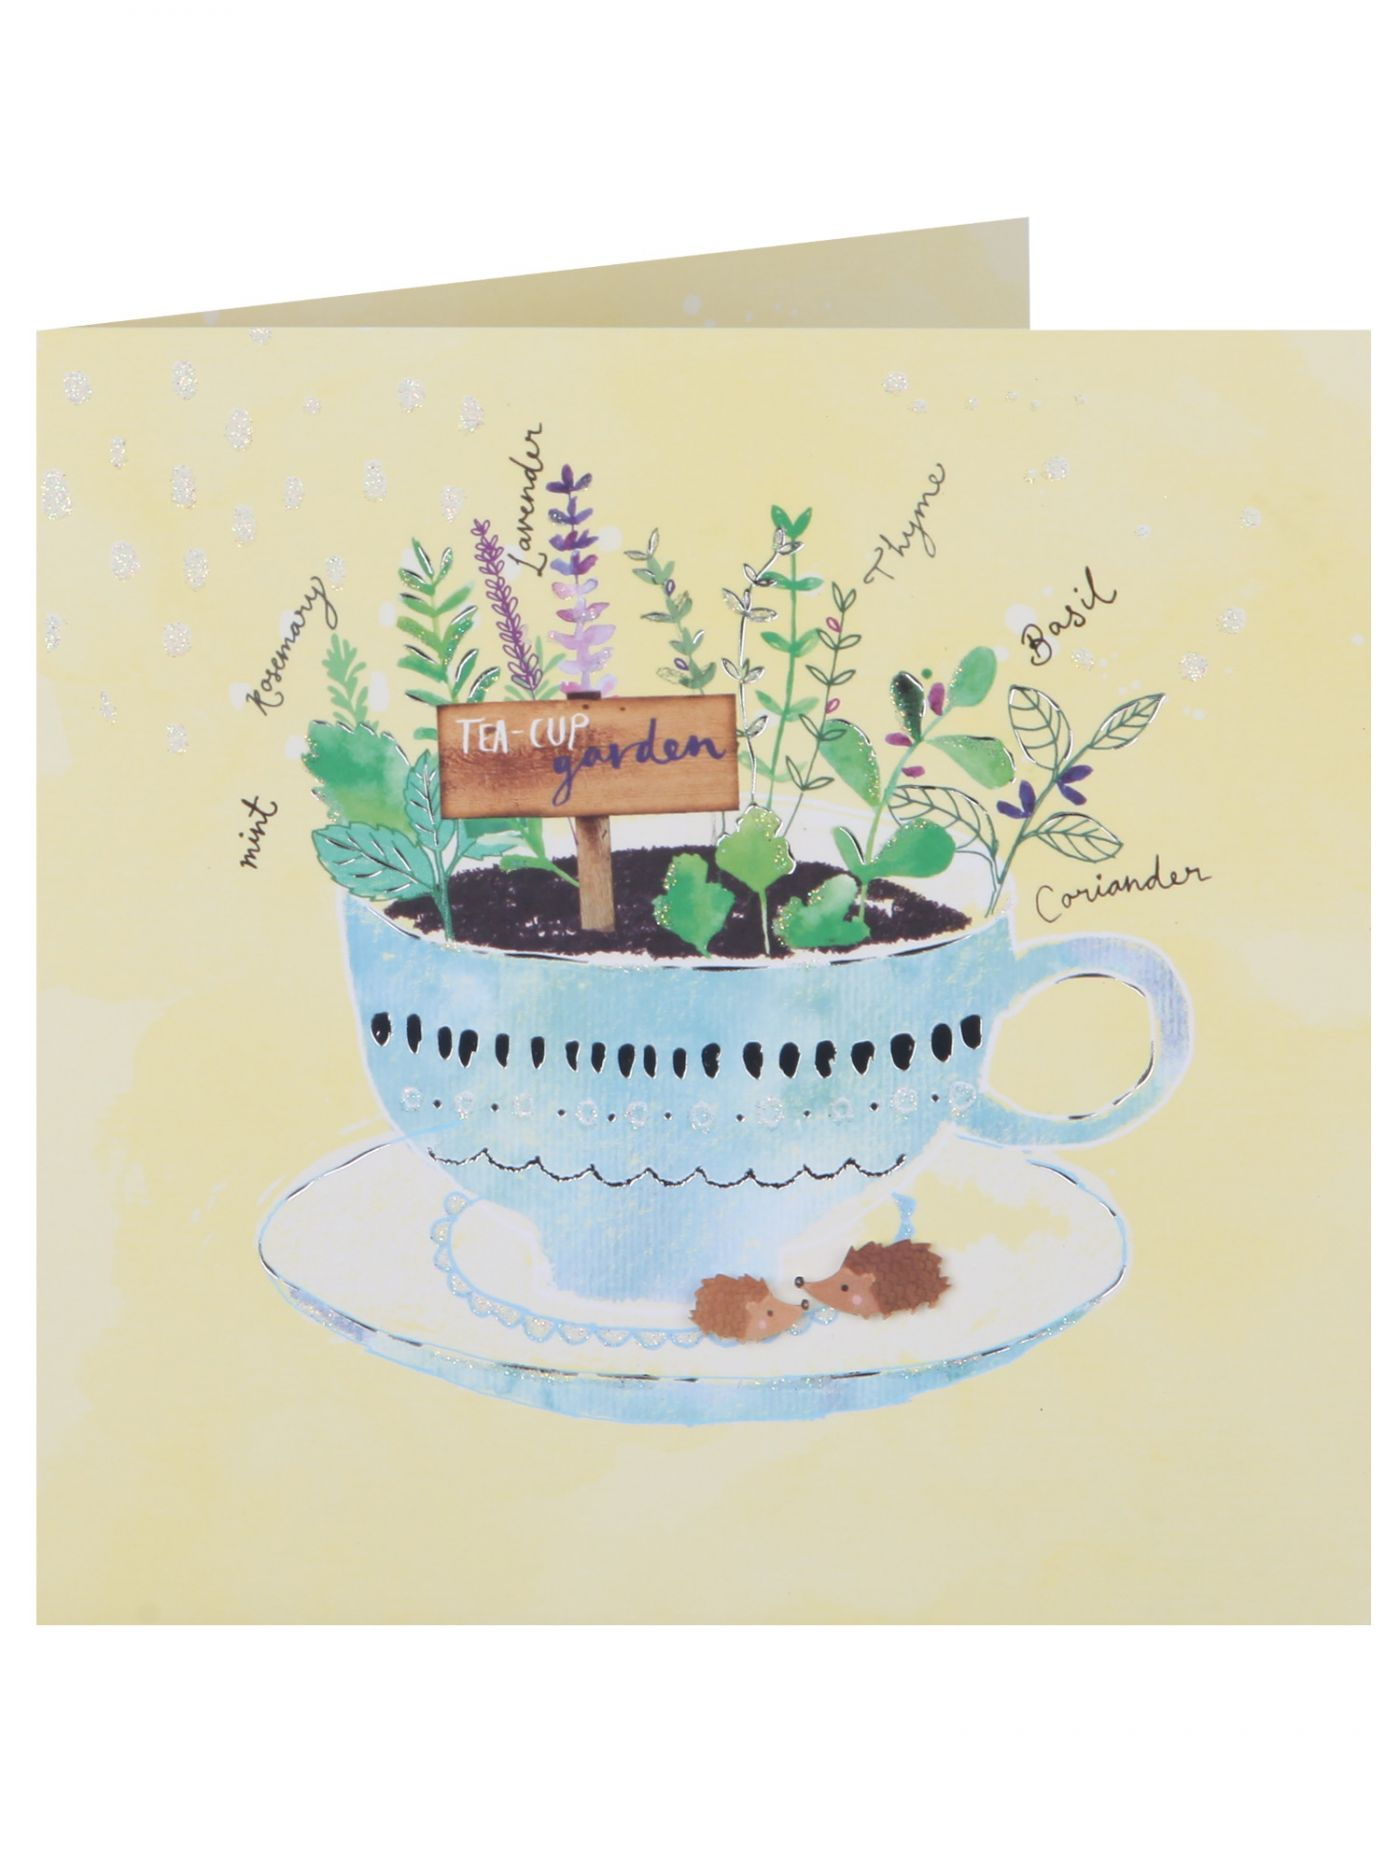 A La Mode Tea Cup Garden Mother's Day Card - Cards - Mothers Day | Clintons